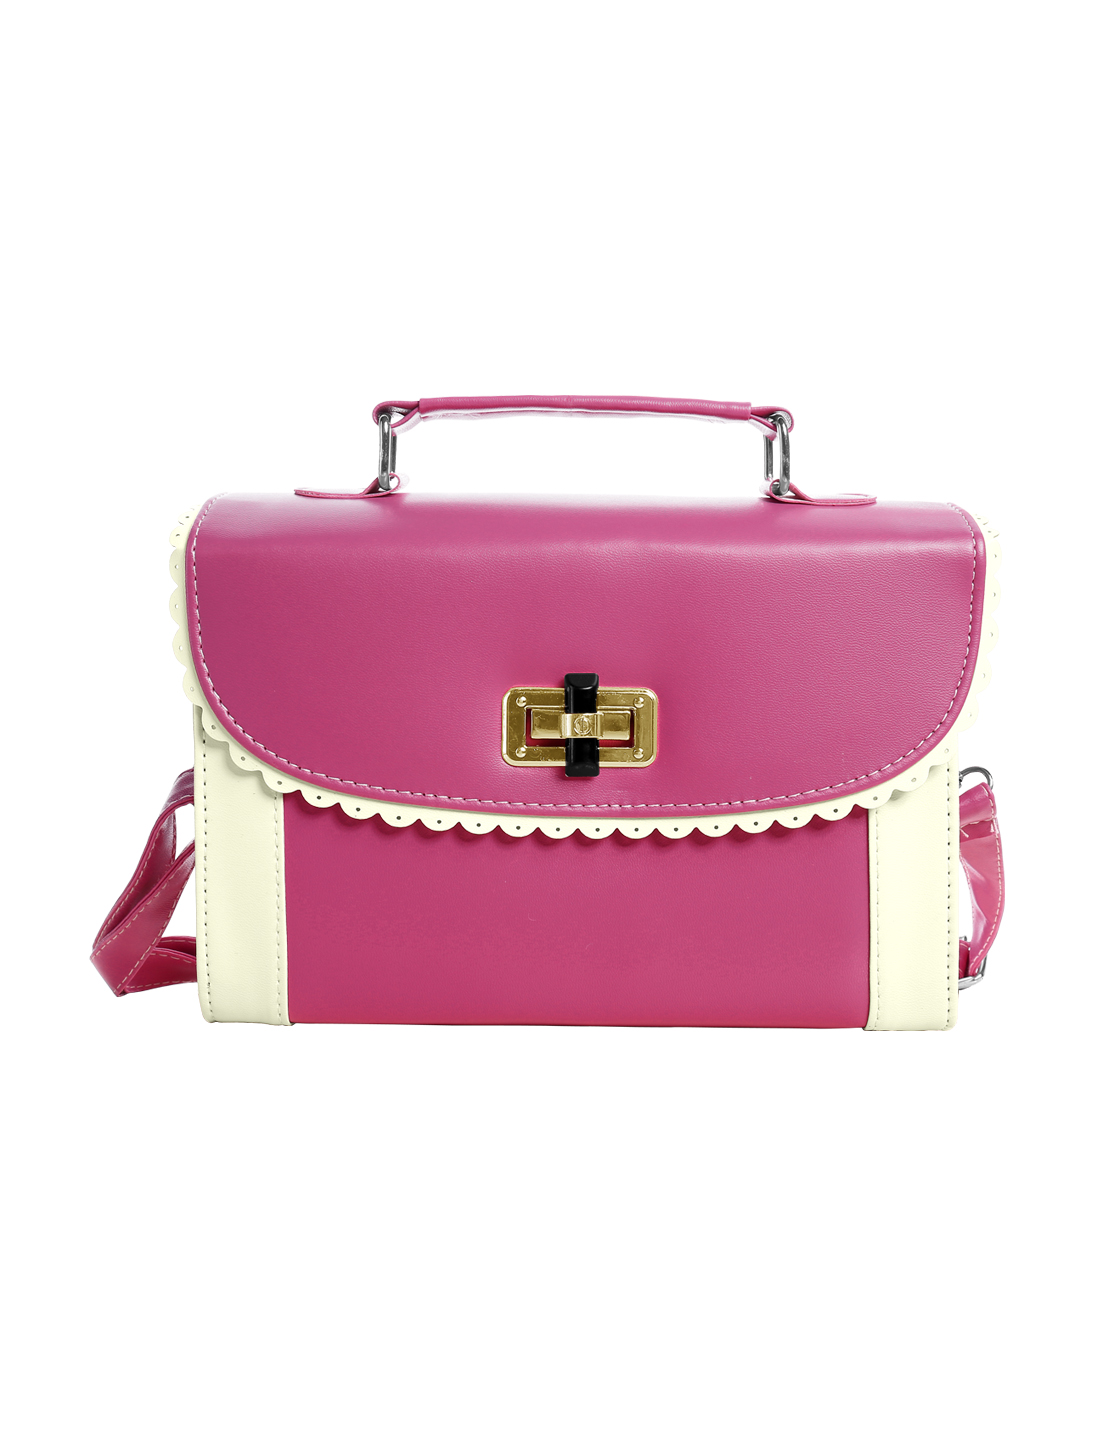 Ladies Contrast Color Fully Lined Turn-Lock Clasp Handbags Fuchsia